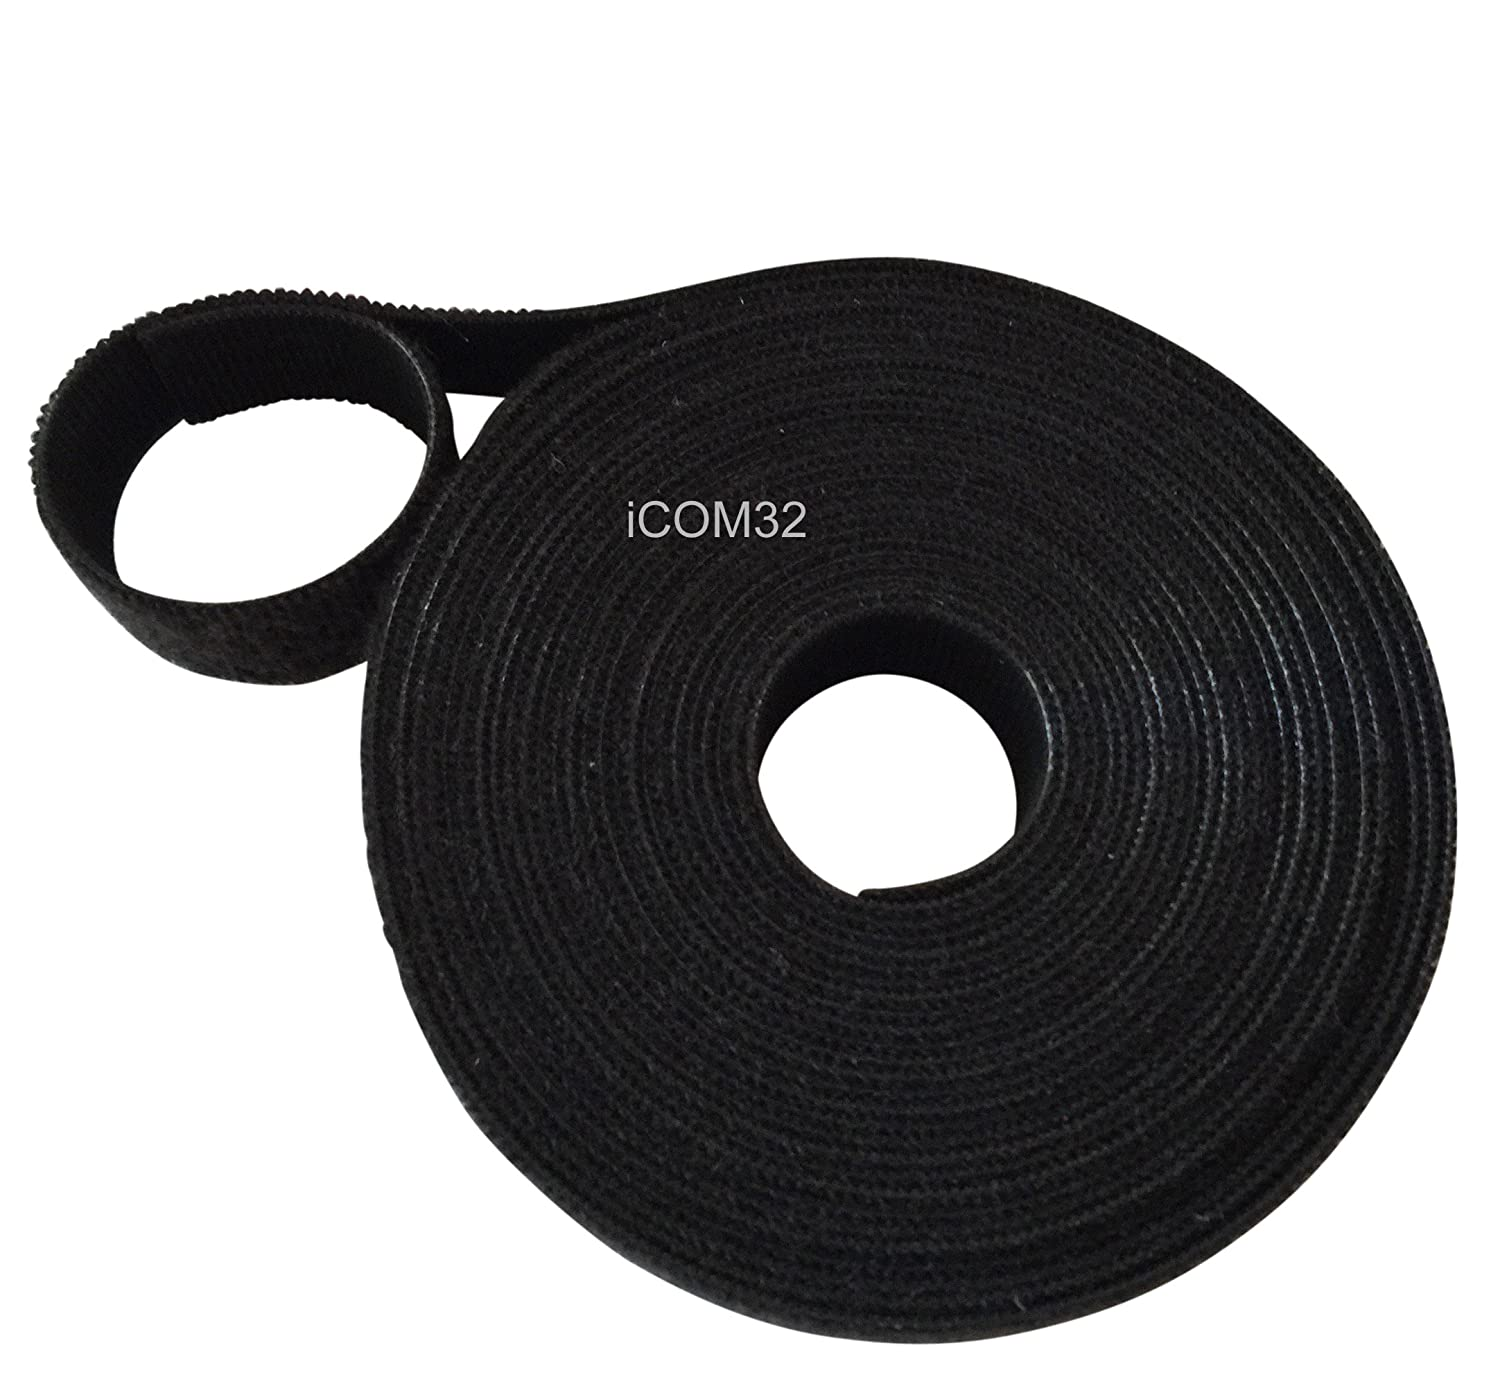 VELCRO® Brand Hook and loop ONE-WRAP® back to back Strapping in BLACK 2.5CM Wide X 50CM Long VELCRO®